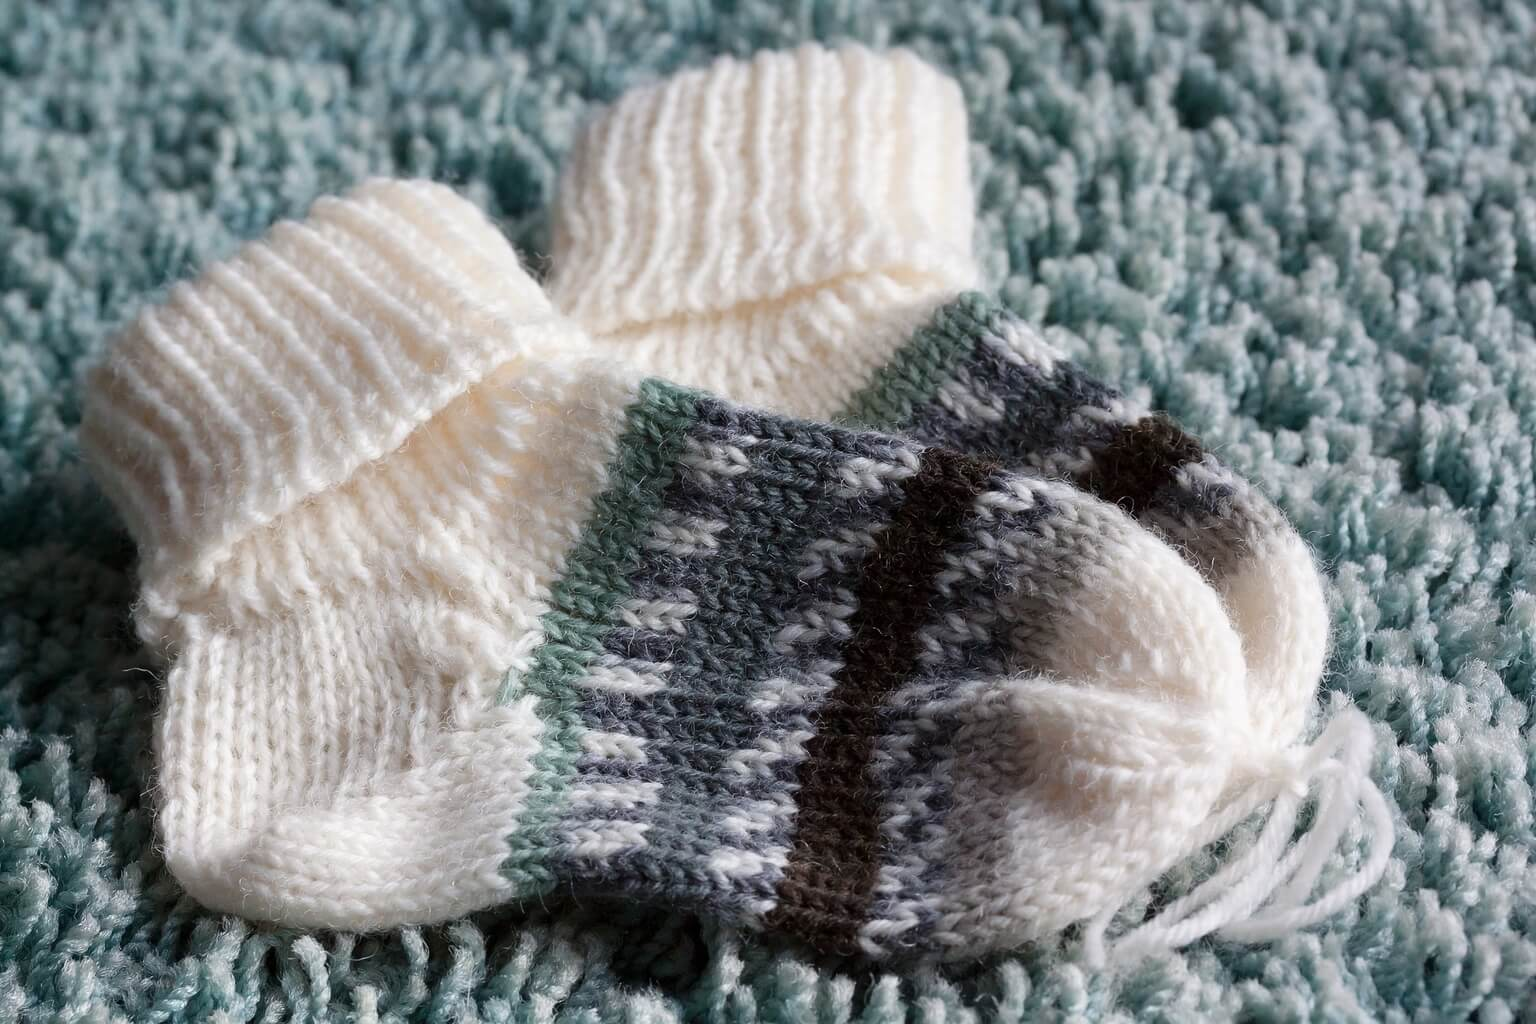 A picture of two small wool baby socks.